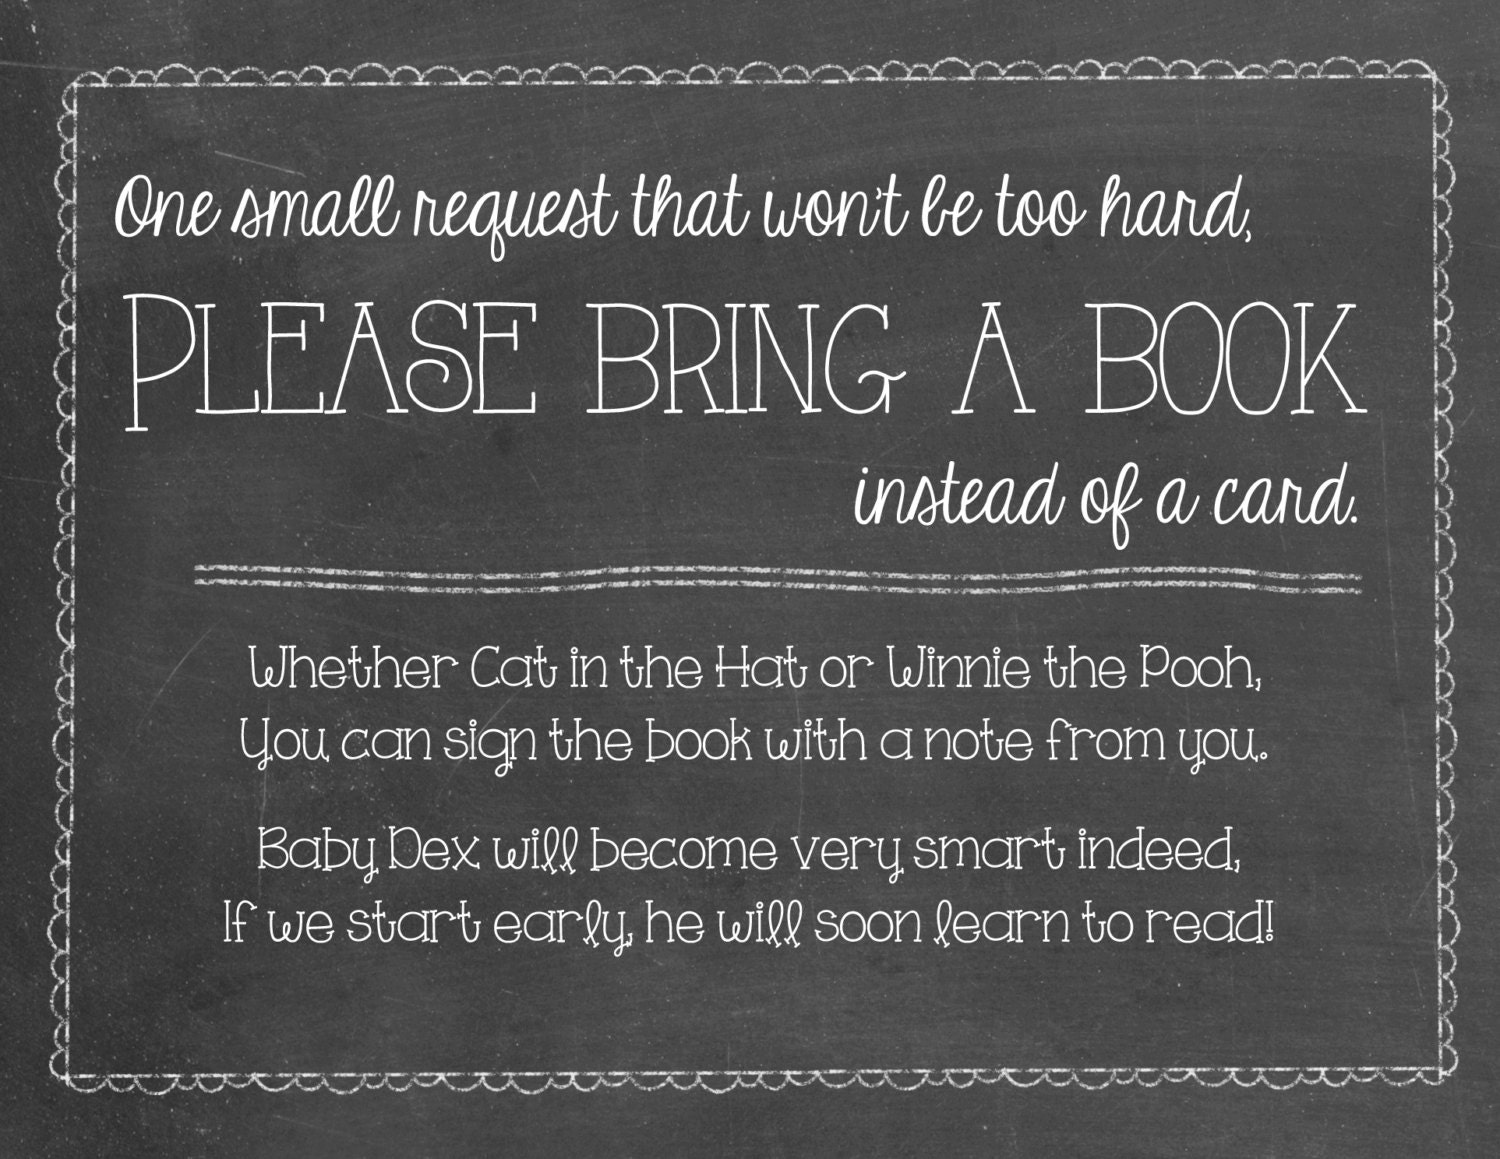 Superb image pertaining to bring a book instead of a card free printable